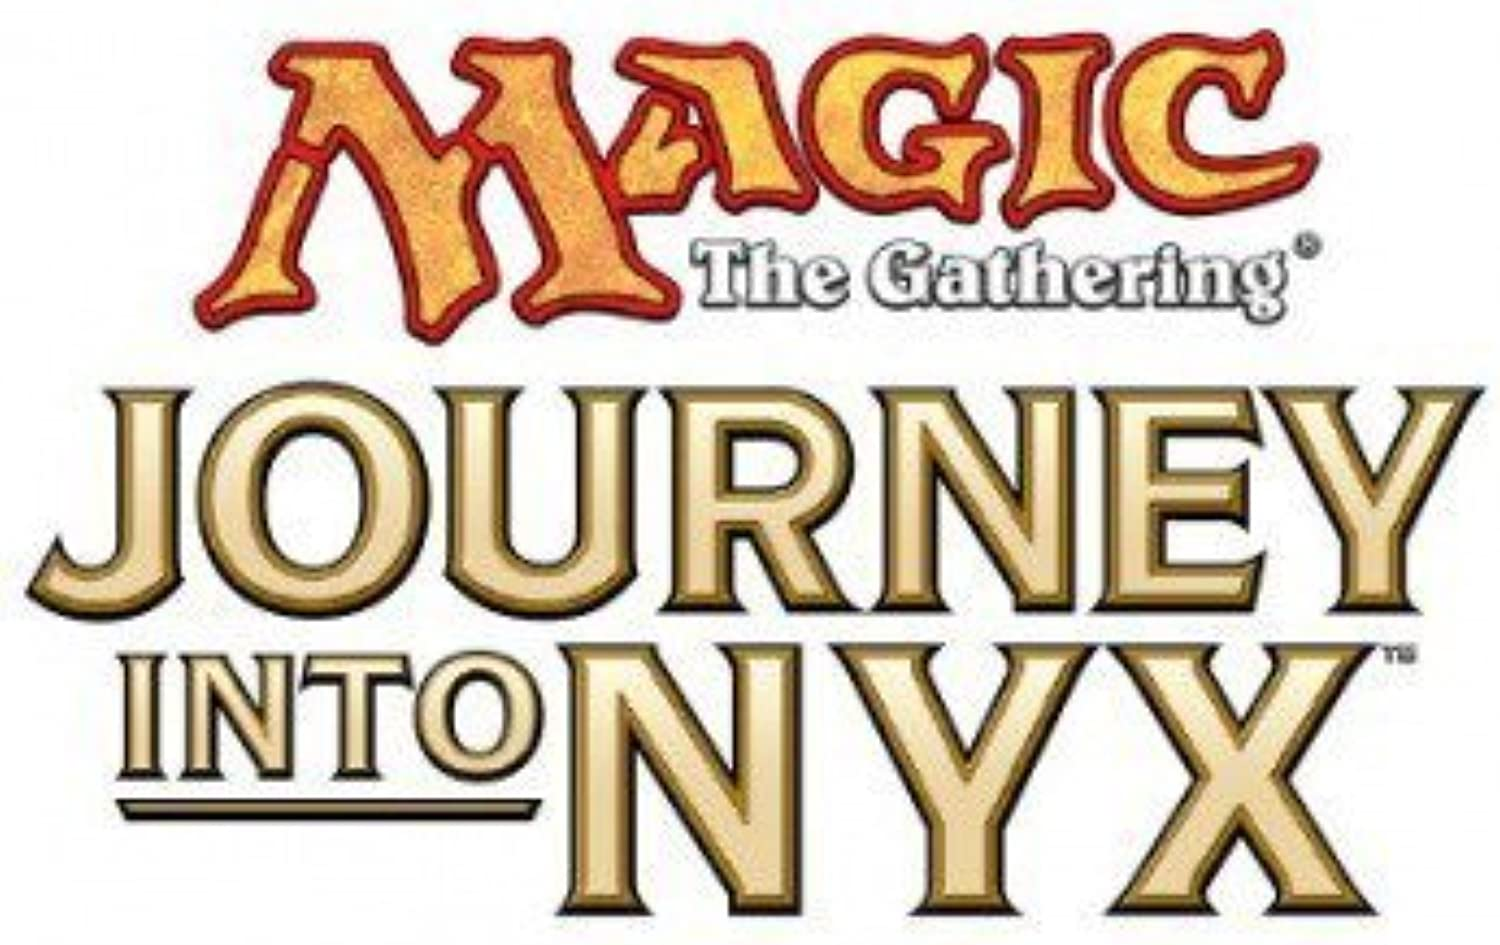 Journey Into Nyx - Intro Pack Display Box (10 Decks) MINT New by Wizards of the Coast